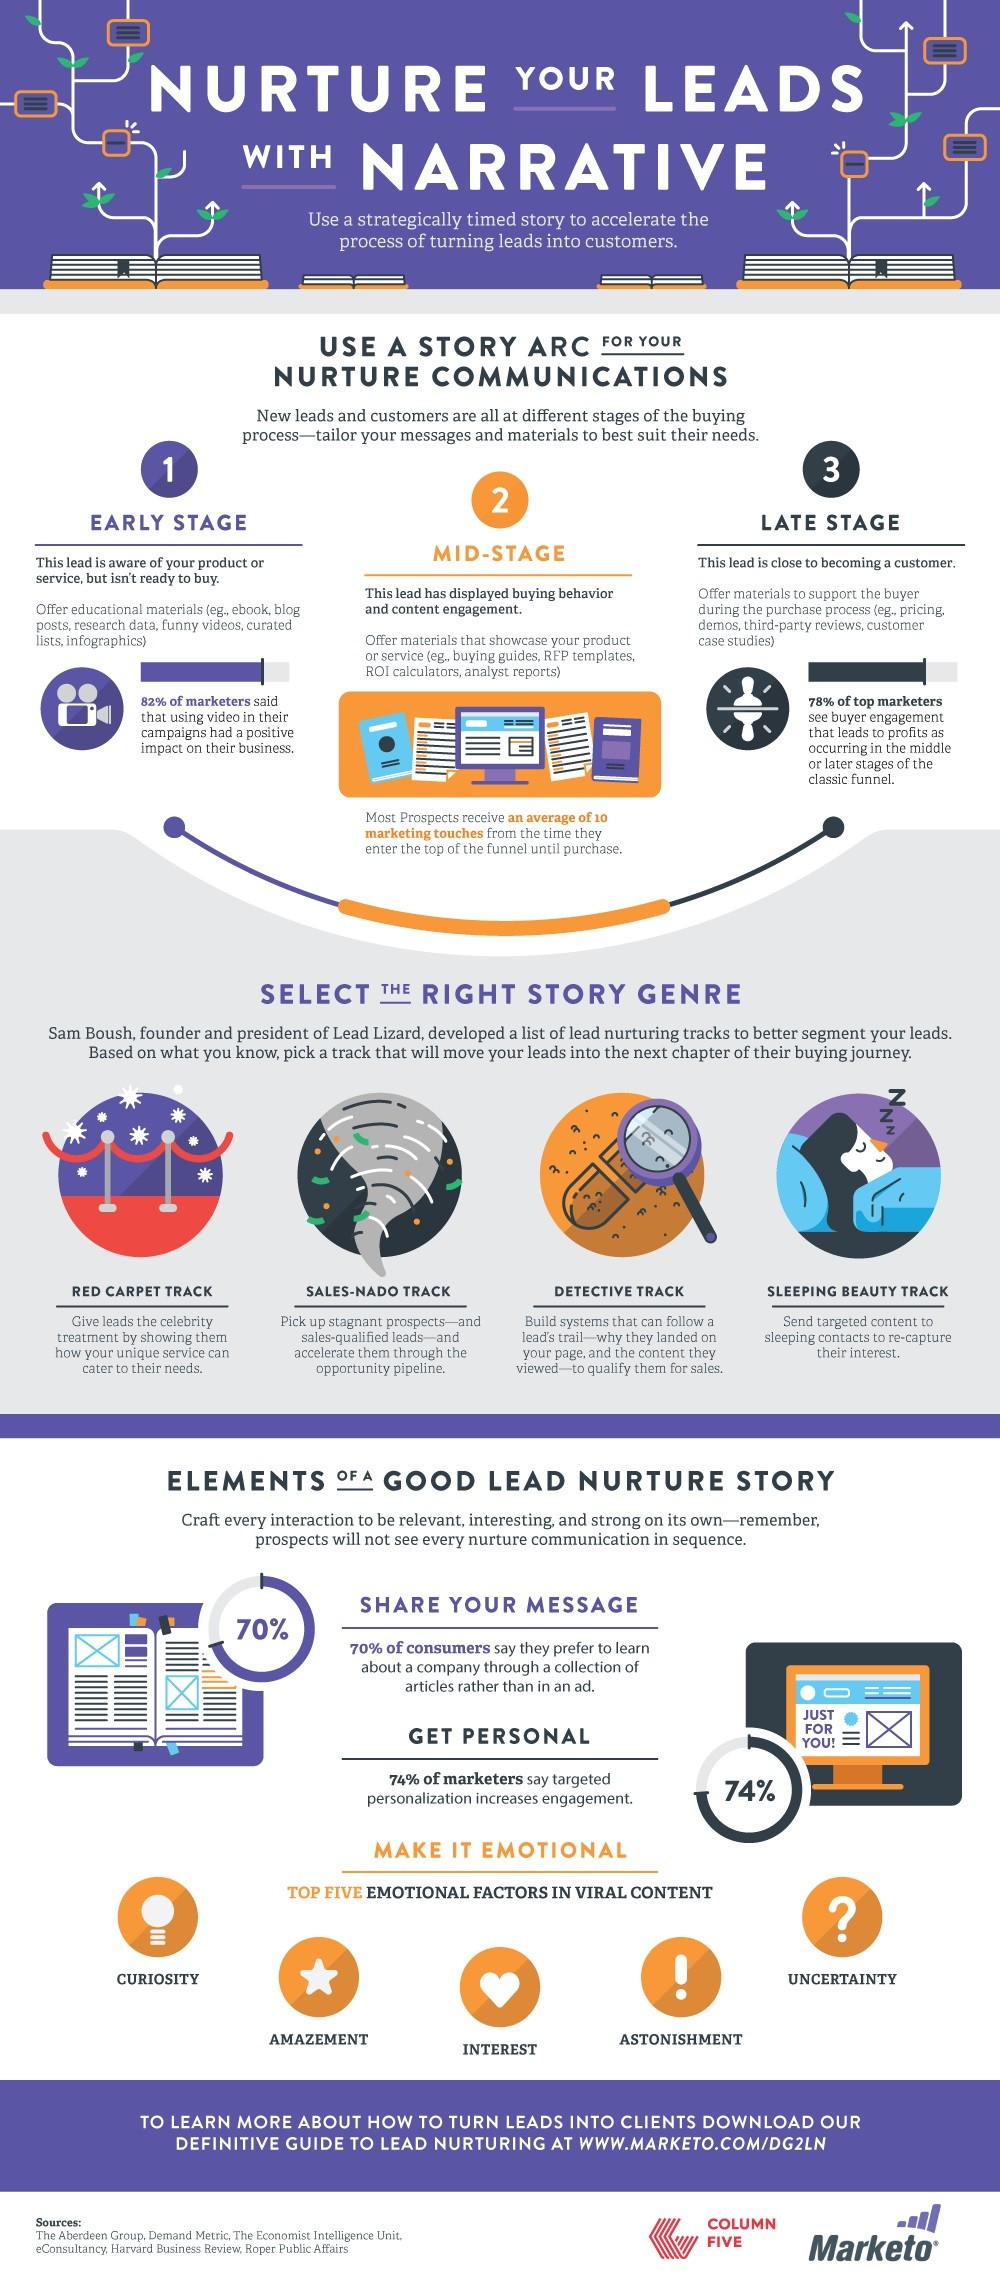 150324-nurture-your-leads-with-narratives-infographic